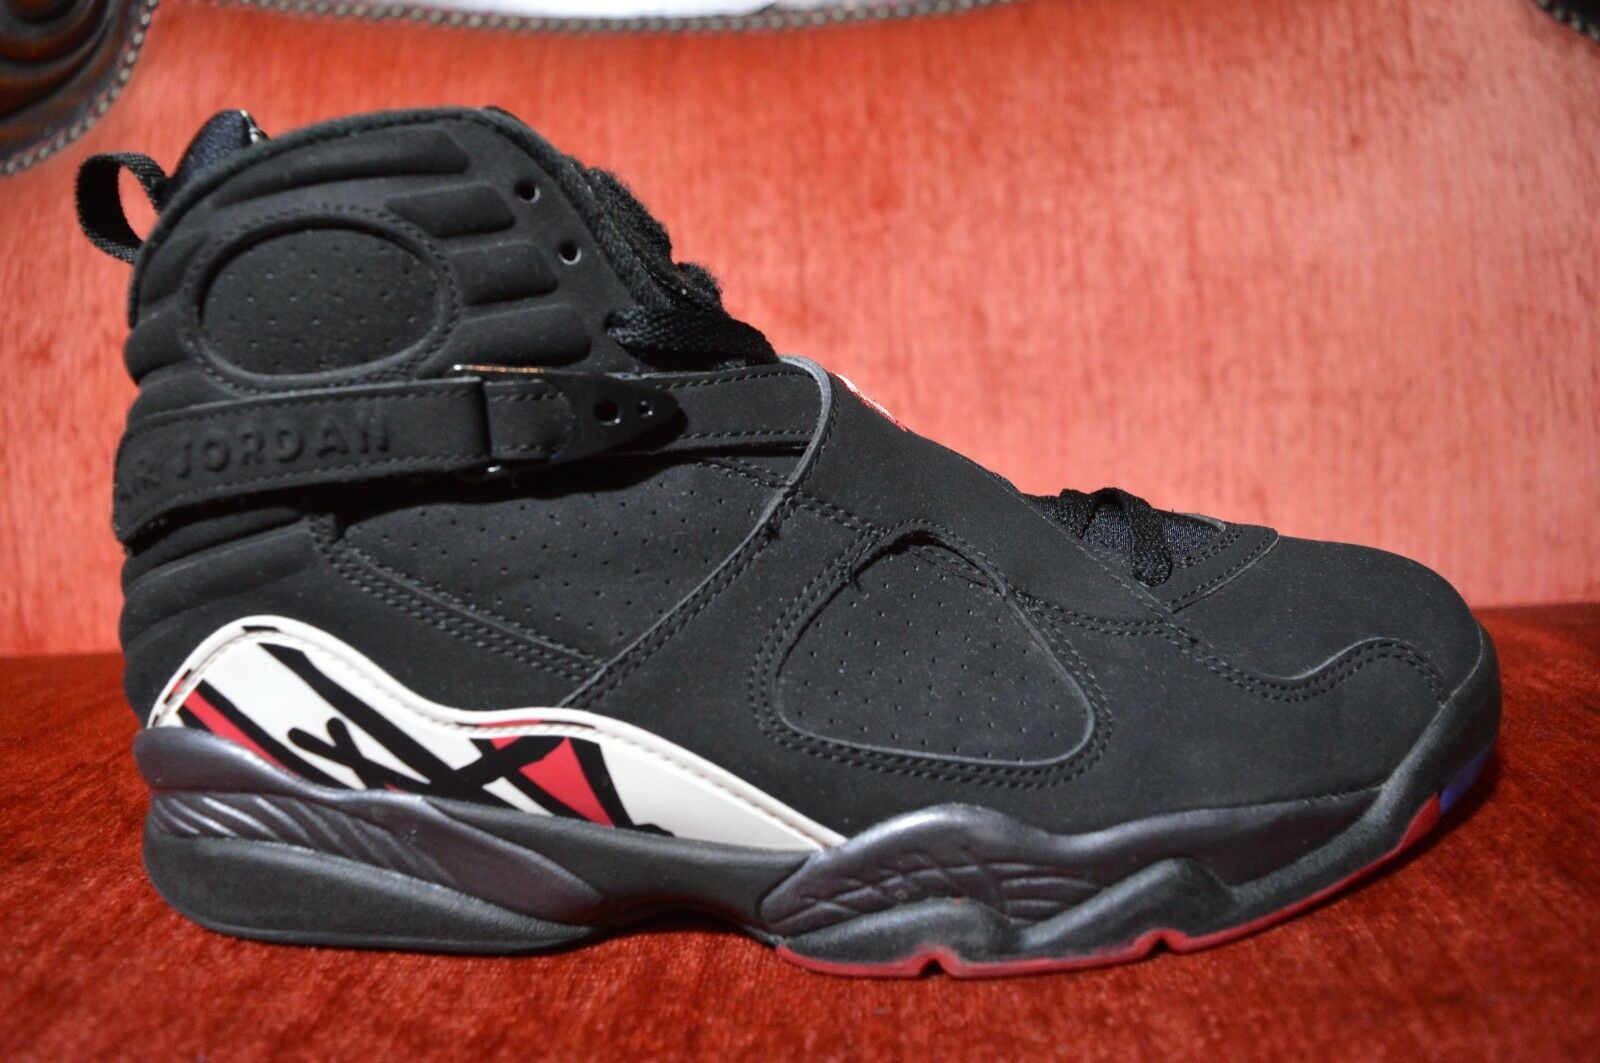 Nike Air Jordan 8 VIII Retro Playoff 2013 Black Red White Basketball Size 10.5